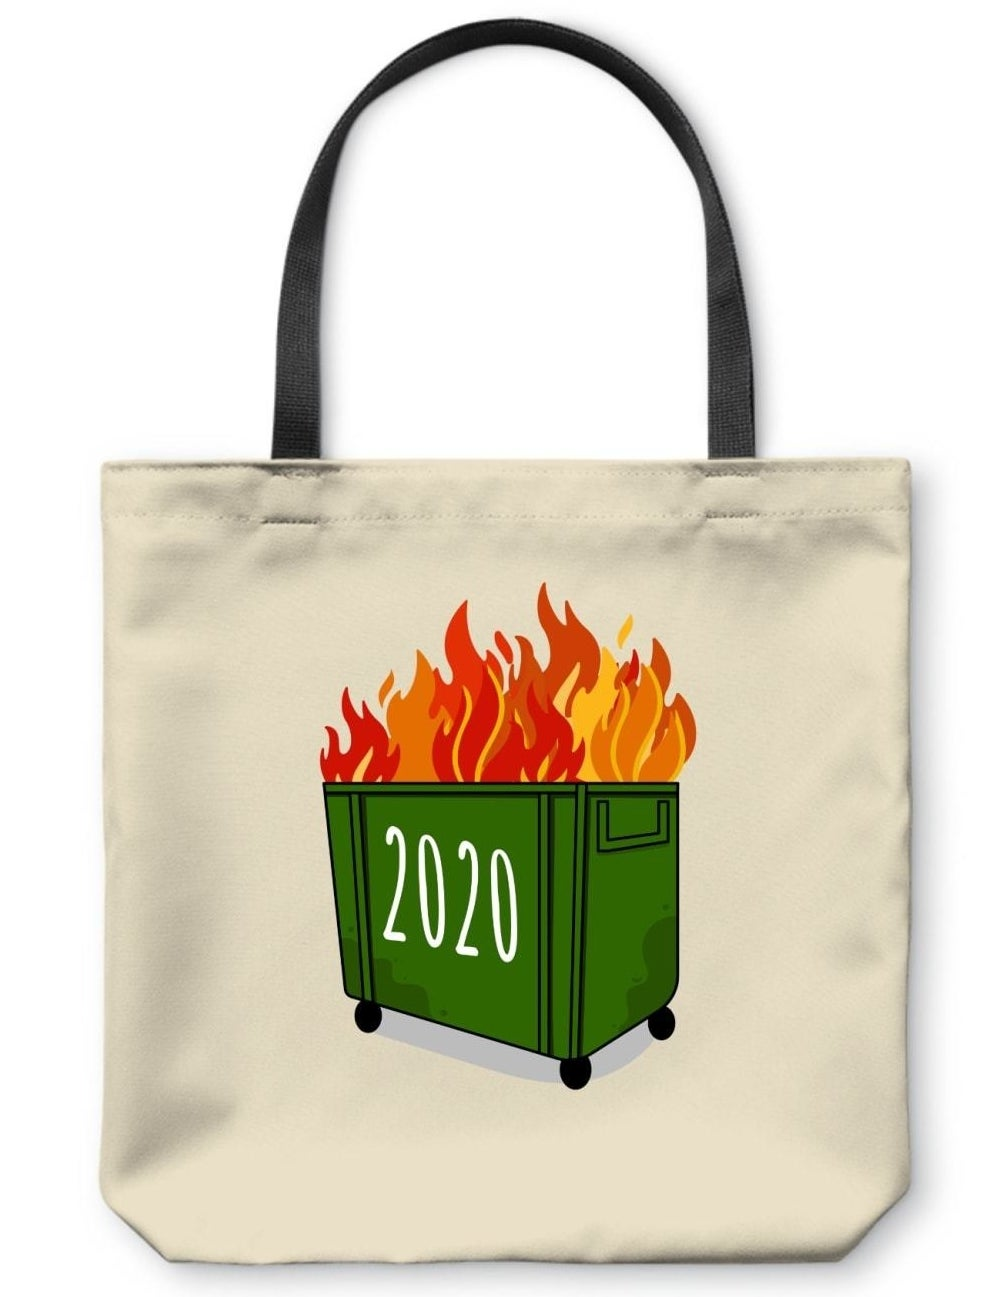 Tote bag with green dumpster on fire and year 2020 on the front